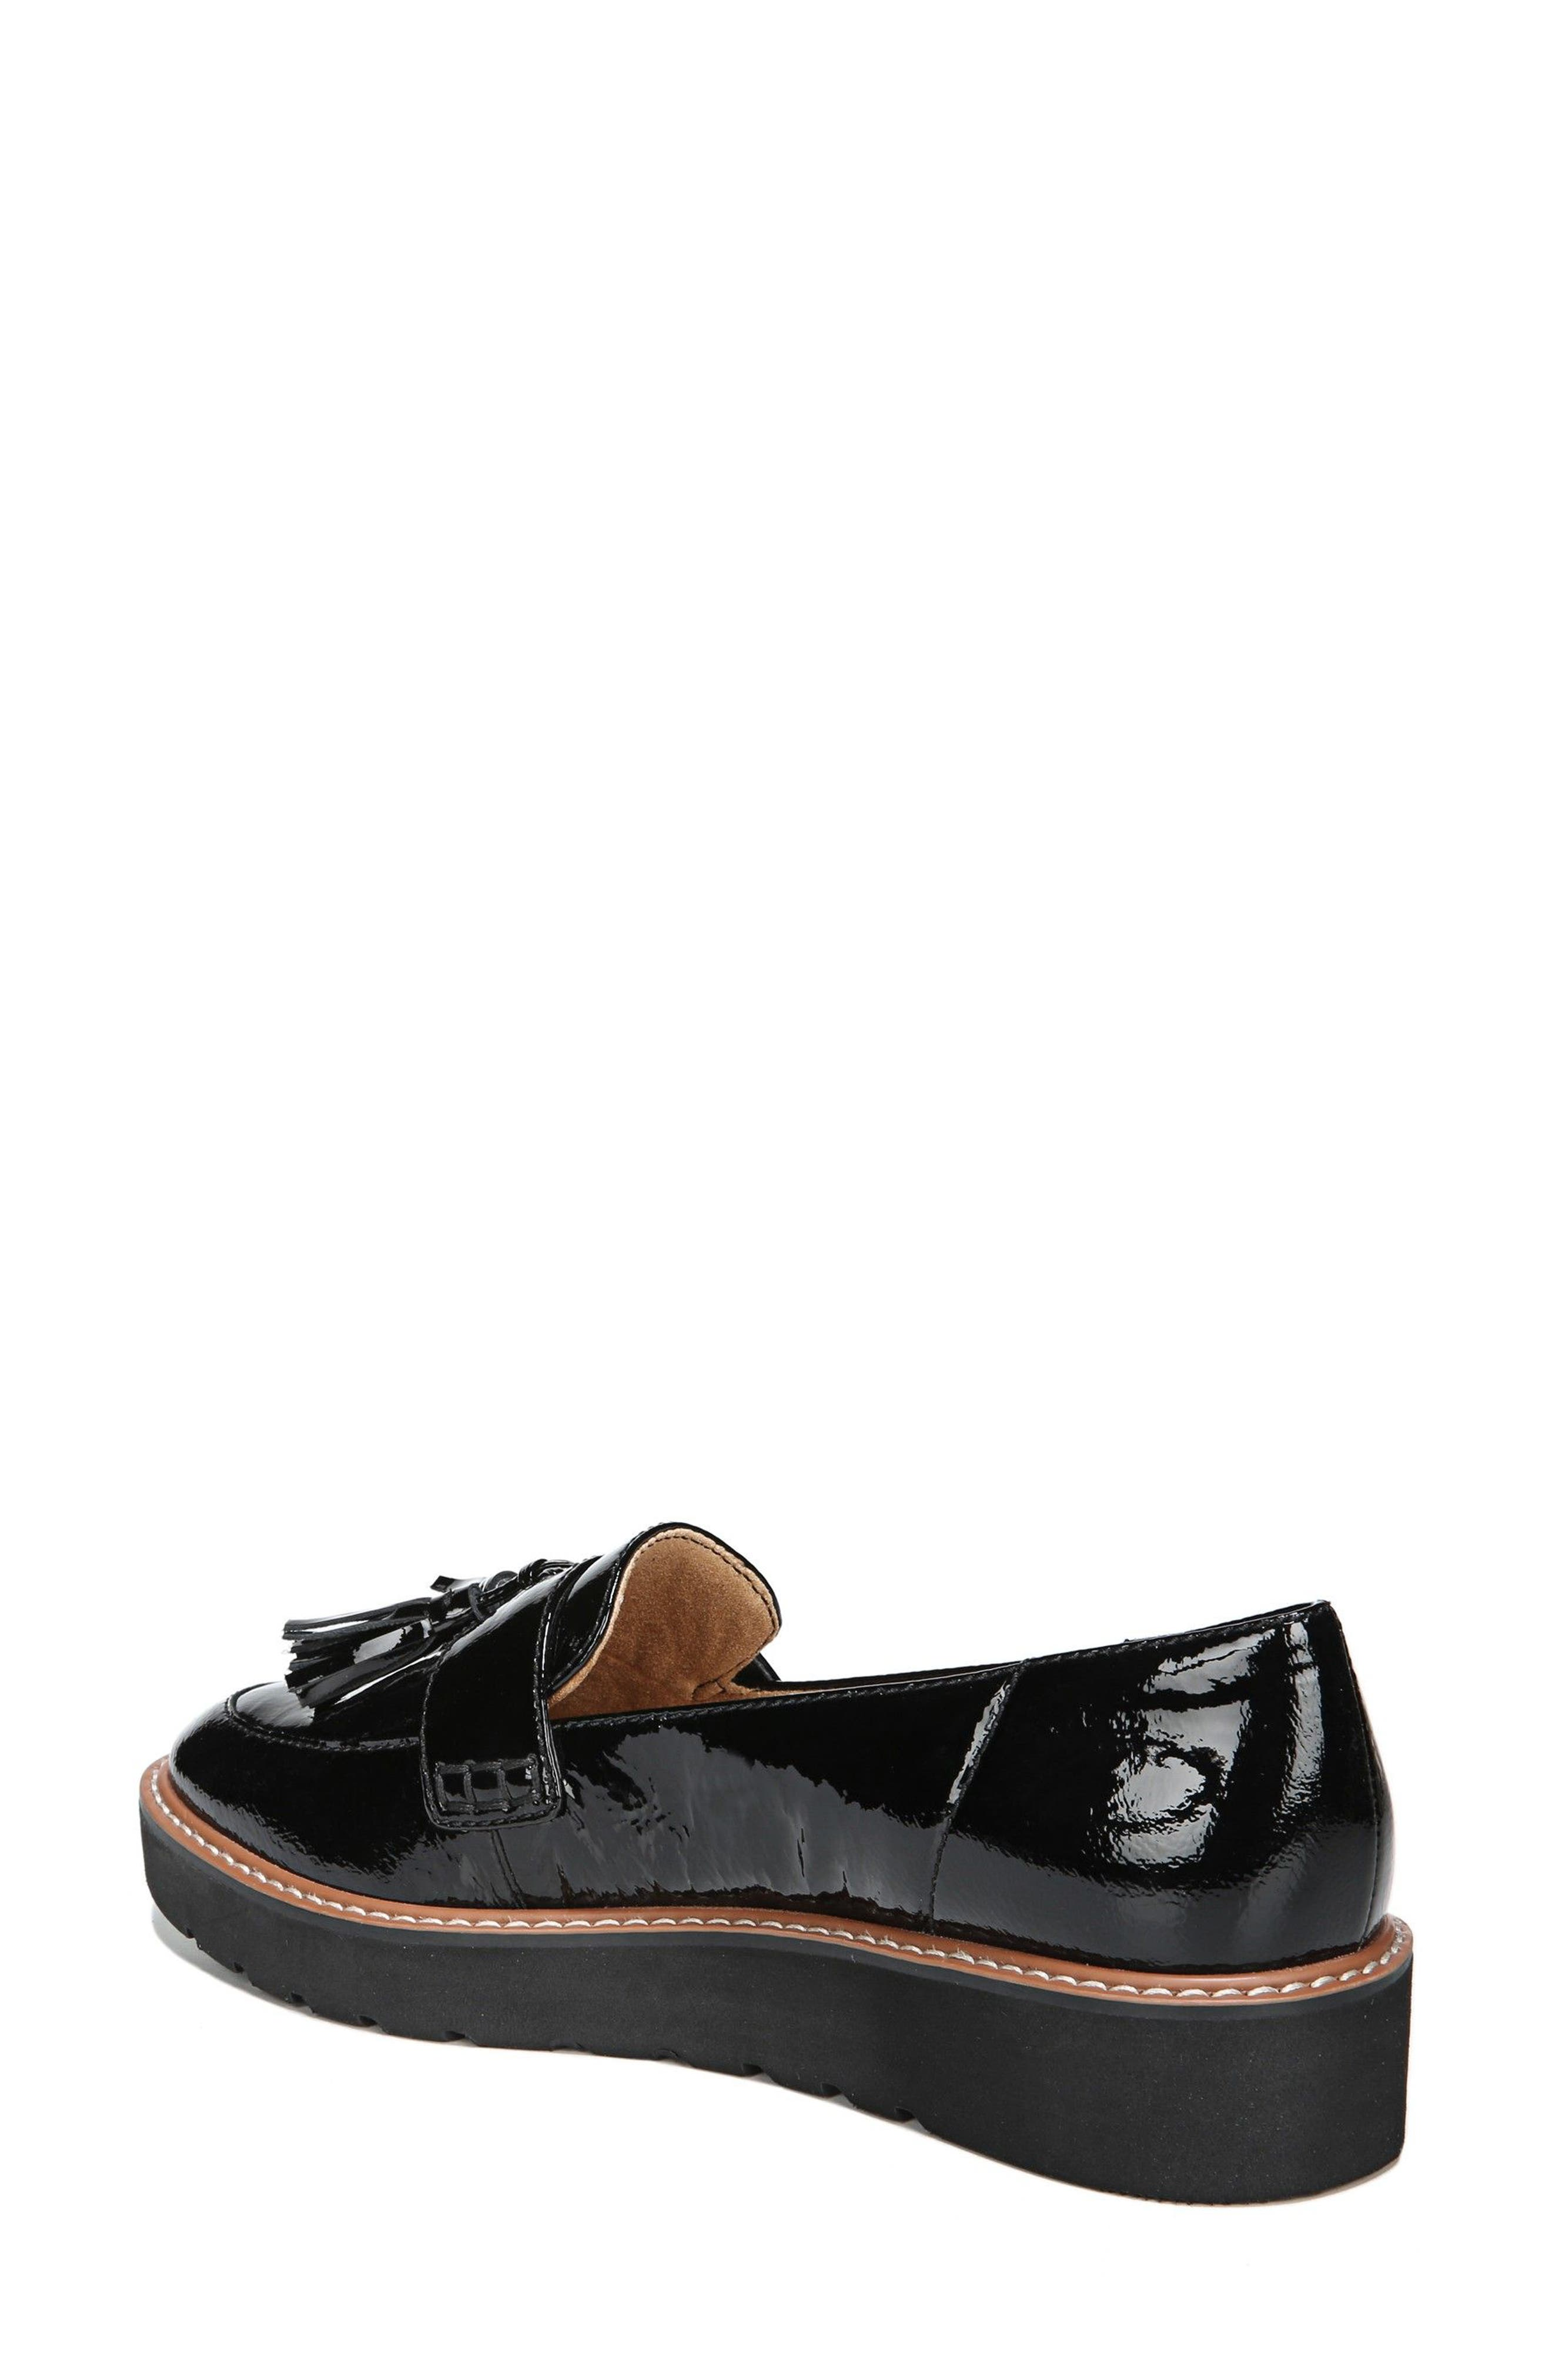 NATURALIZER, August Loafer, Alternate thumbnail 2, color, 002